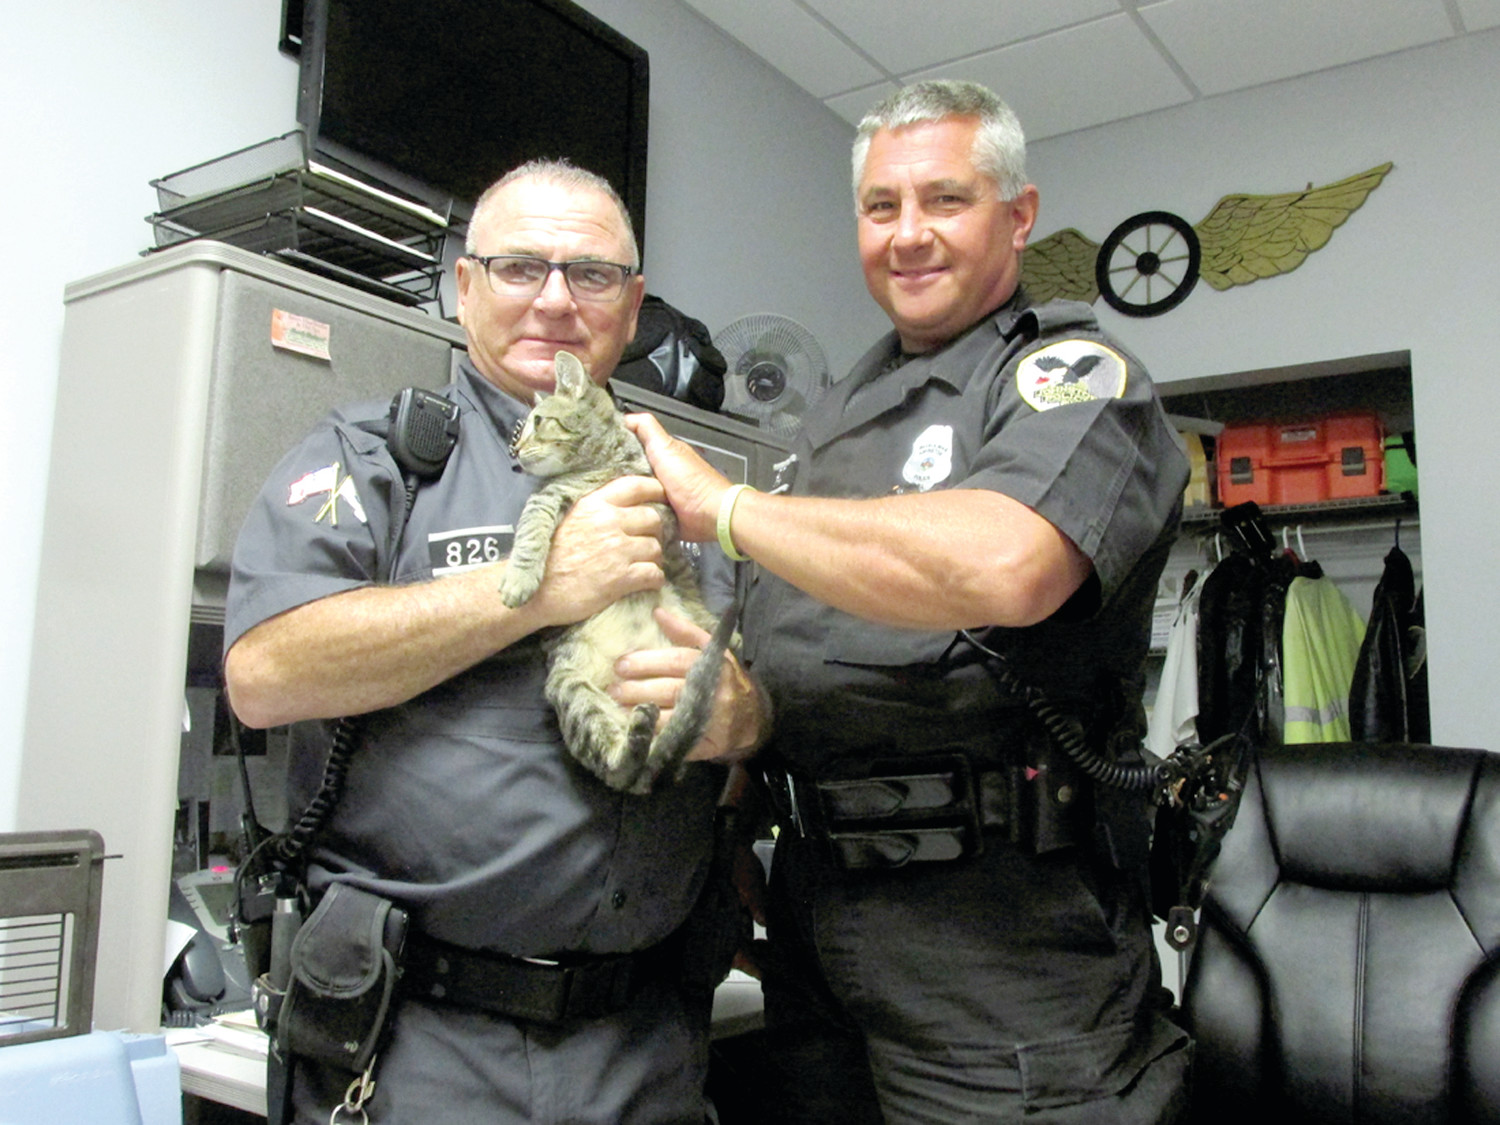 LANDED LOVERS: Johnston Animal Control Officer Richard Starnino holds Landed, who with help from veterinarians at the Ferguson Animal Hospital he brought back to life almost being dead, as Patrolman David Slinko looks on while explaining the unique story and that they're seeking a home for the tiny Tiger cat. (Sun Rise photo by Pete Fontaine)